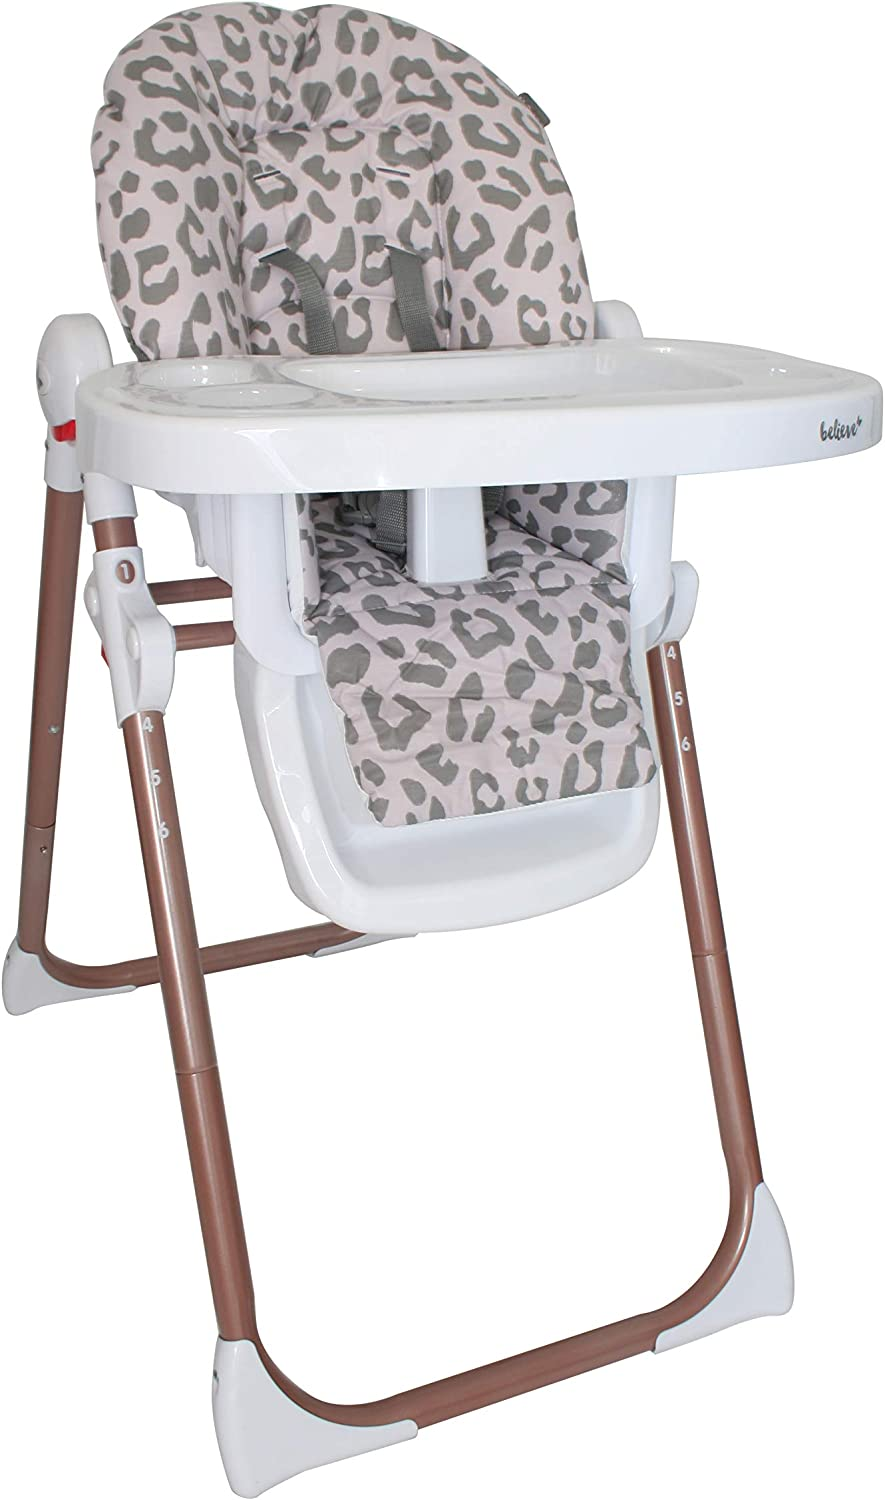 Removable Easy Clean Tray Suitable from 6 Months Up to 15 Kg 6 Different Height Settings My Babiie MBHC8 Katie Piper Believe Rose Gold Blush Leopard Premium Highchair 3 Recline Positions